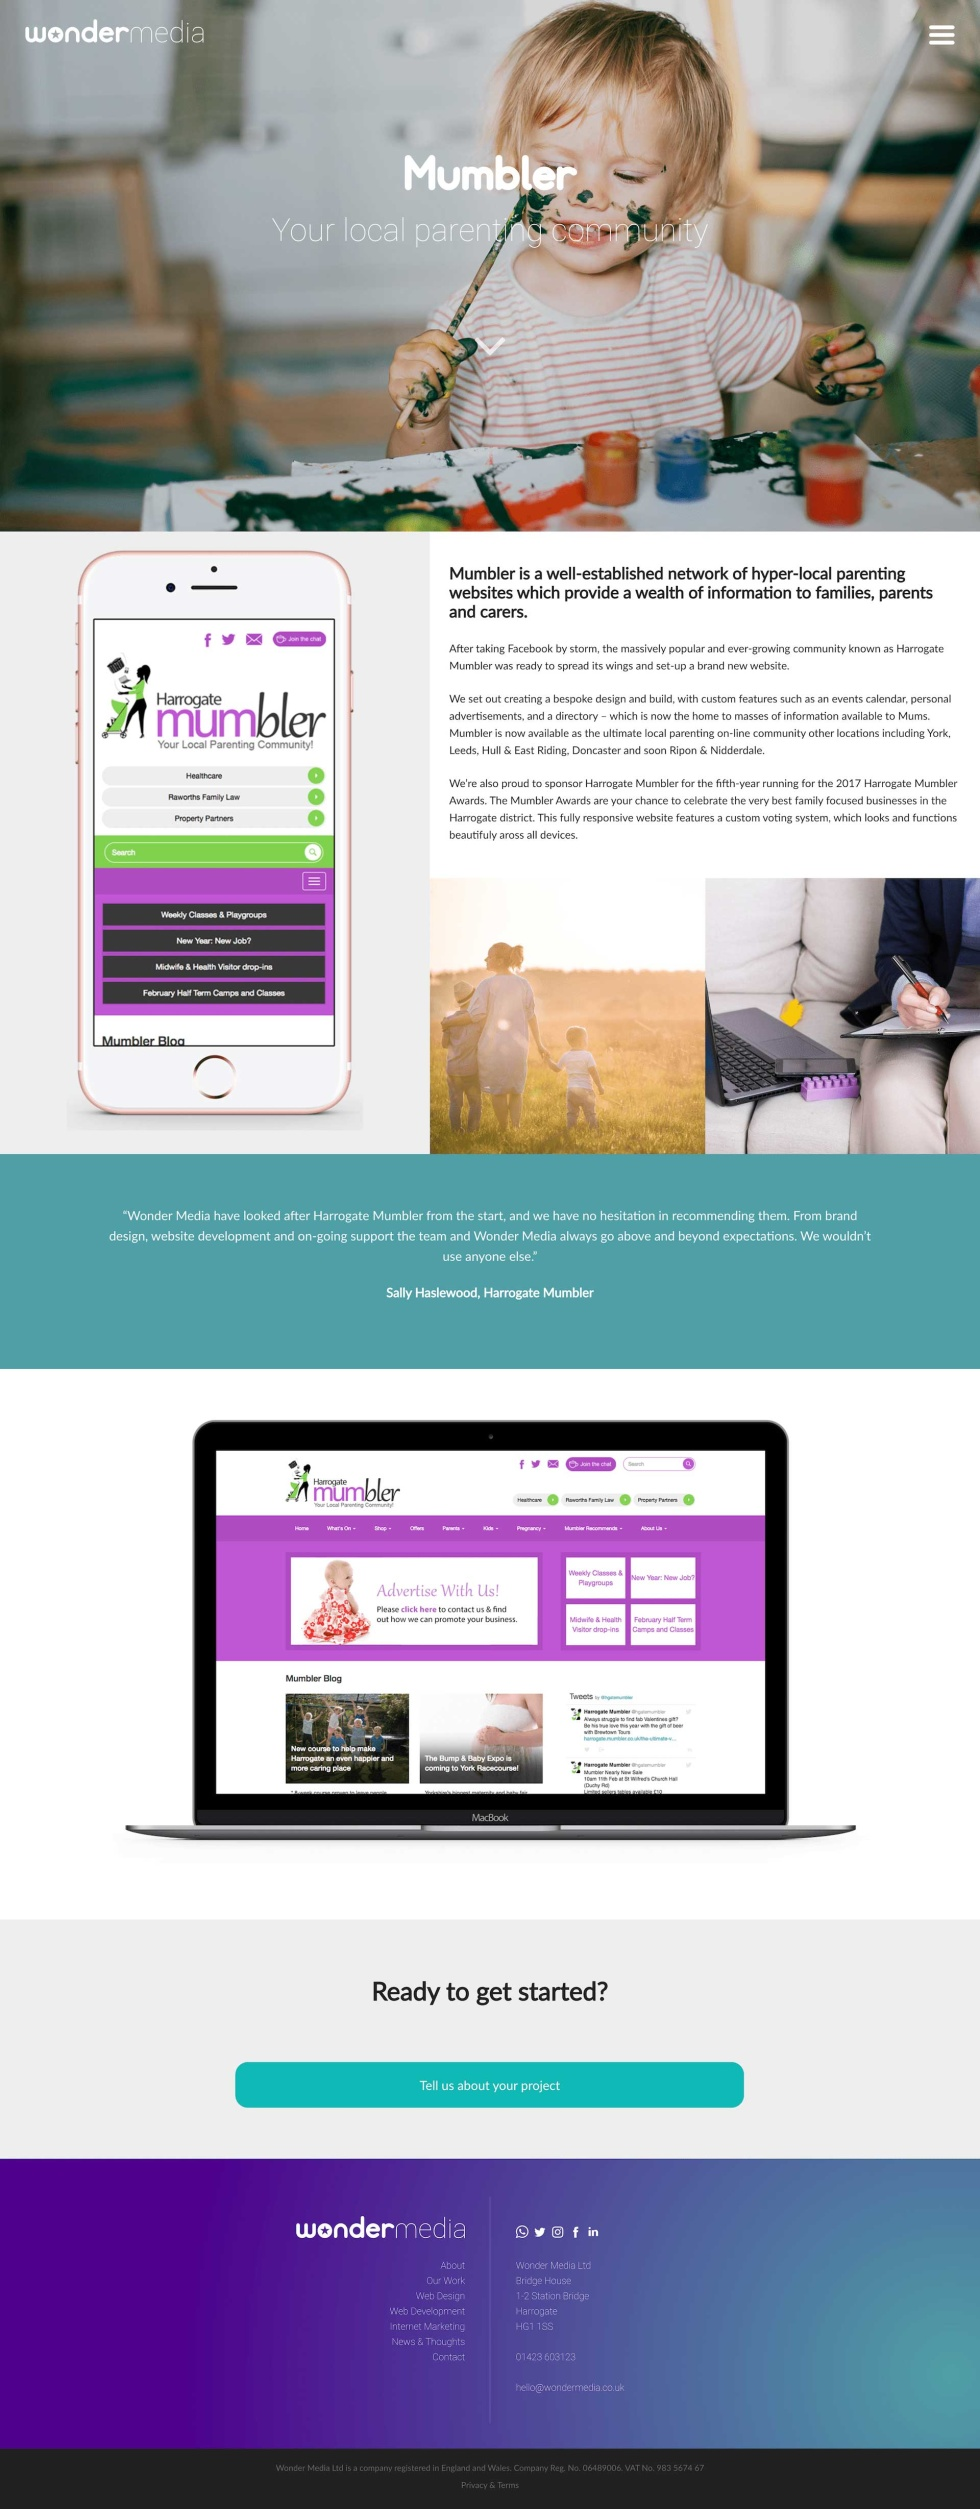 Email template. Page can be split into five parts. At the top, faded image of toddler playing with paint supplies holding a paintbrush with paint all over their face. White logo at the center of the image. Below, iPhone screen displays mobile version of website homepage. To the right of the iPhone, a small paragraph with black lowercase text against a white background. Below the text, two photos side by side (A woman holding two childrens' hands in a field while the sun is setting and a cropped image of someone taking notes from a laptop while sitting on the couch). Below the iPhone and text with accompanying images, a rectangular box across the page with a teal background and a quote in white text that overlays. Below, a Mac desktop with desktop version of website. Below this, green contact button along with more information and branding.